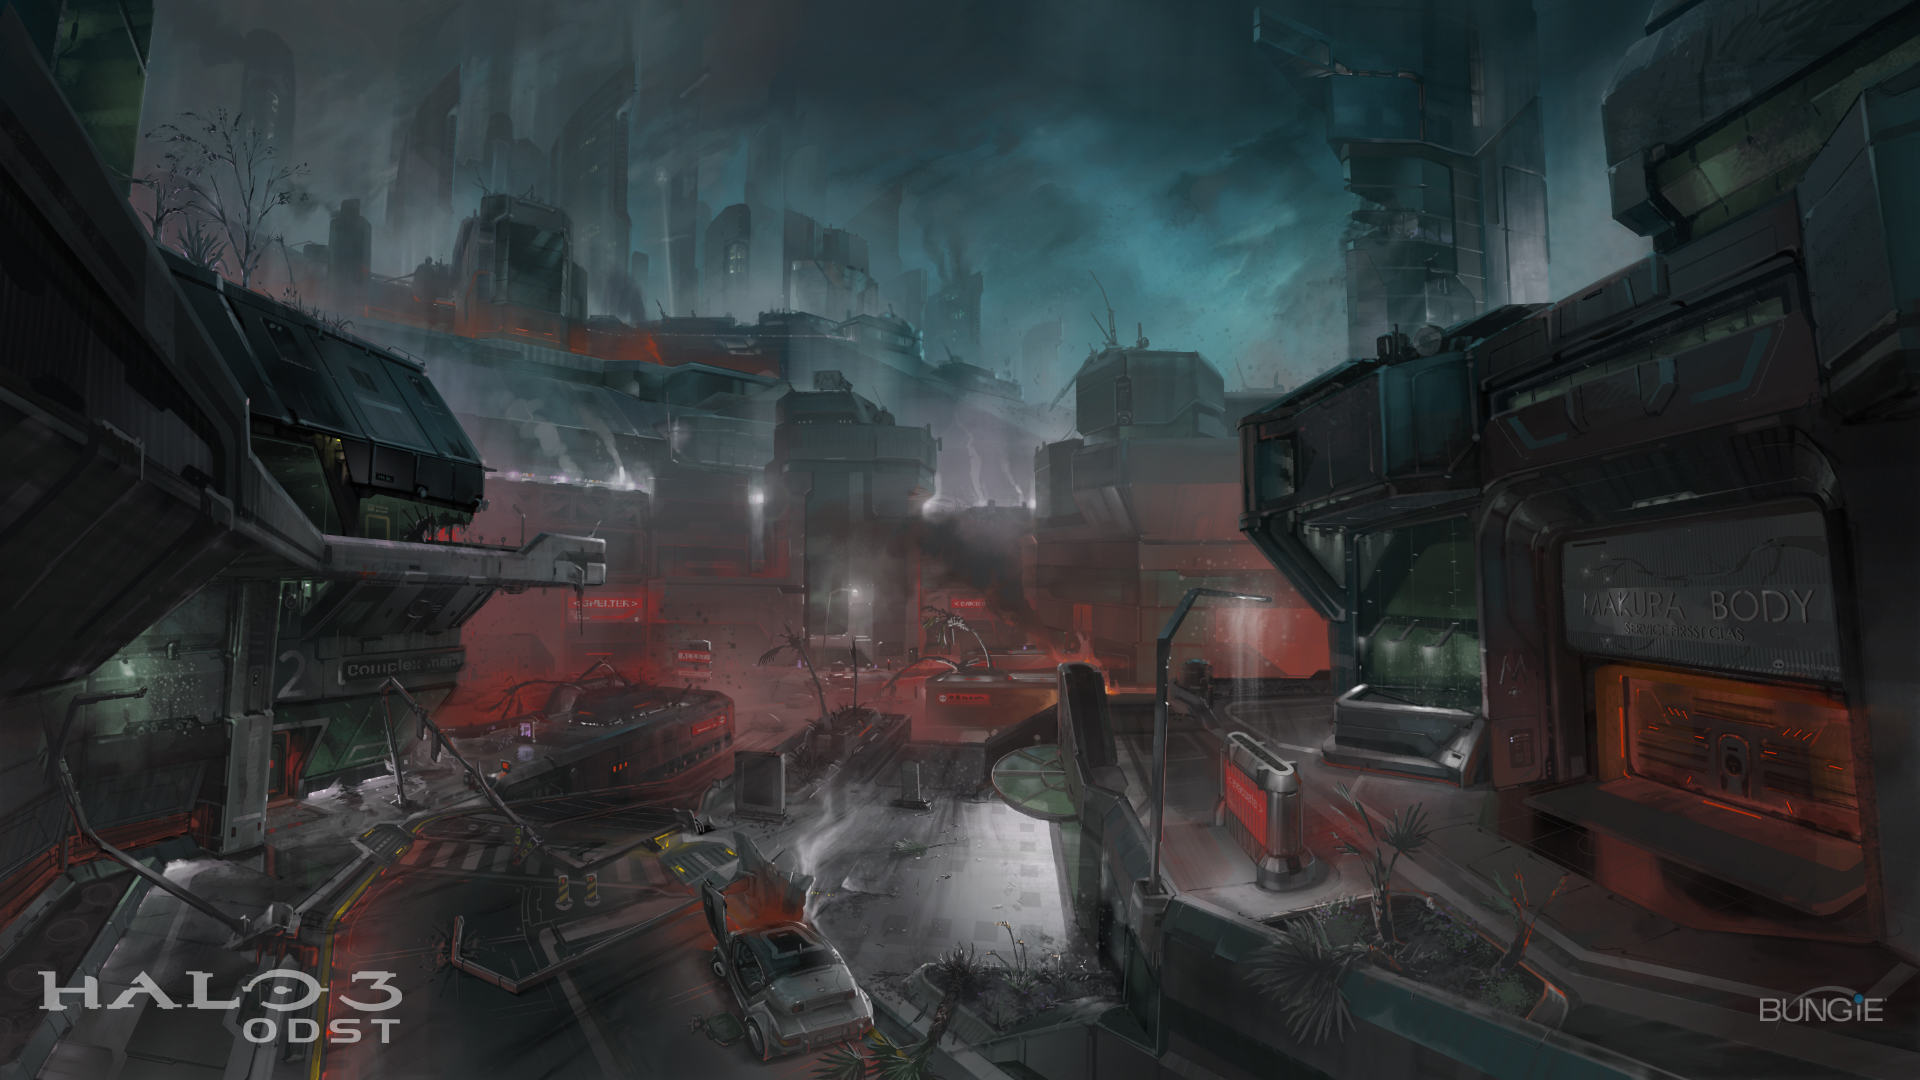 Image halo 3 odst concept art destroyed city at night jpg halo nation fandom powered by wikia